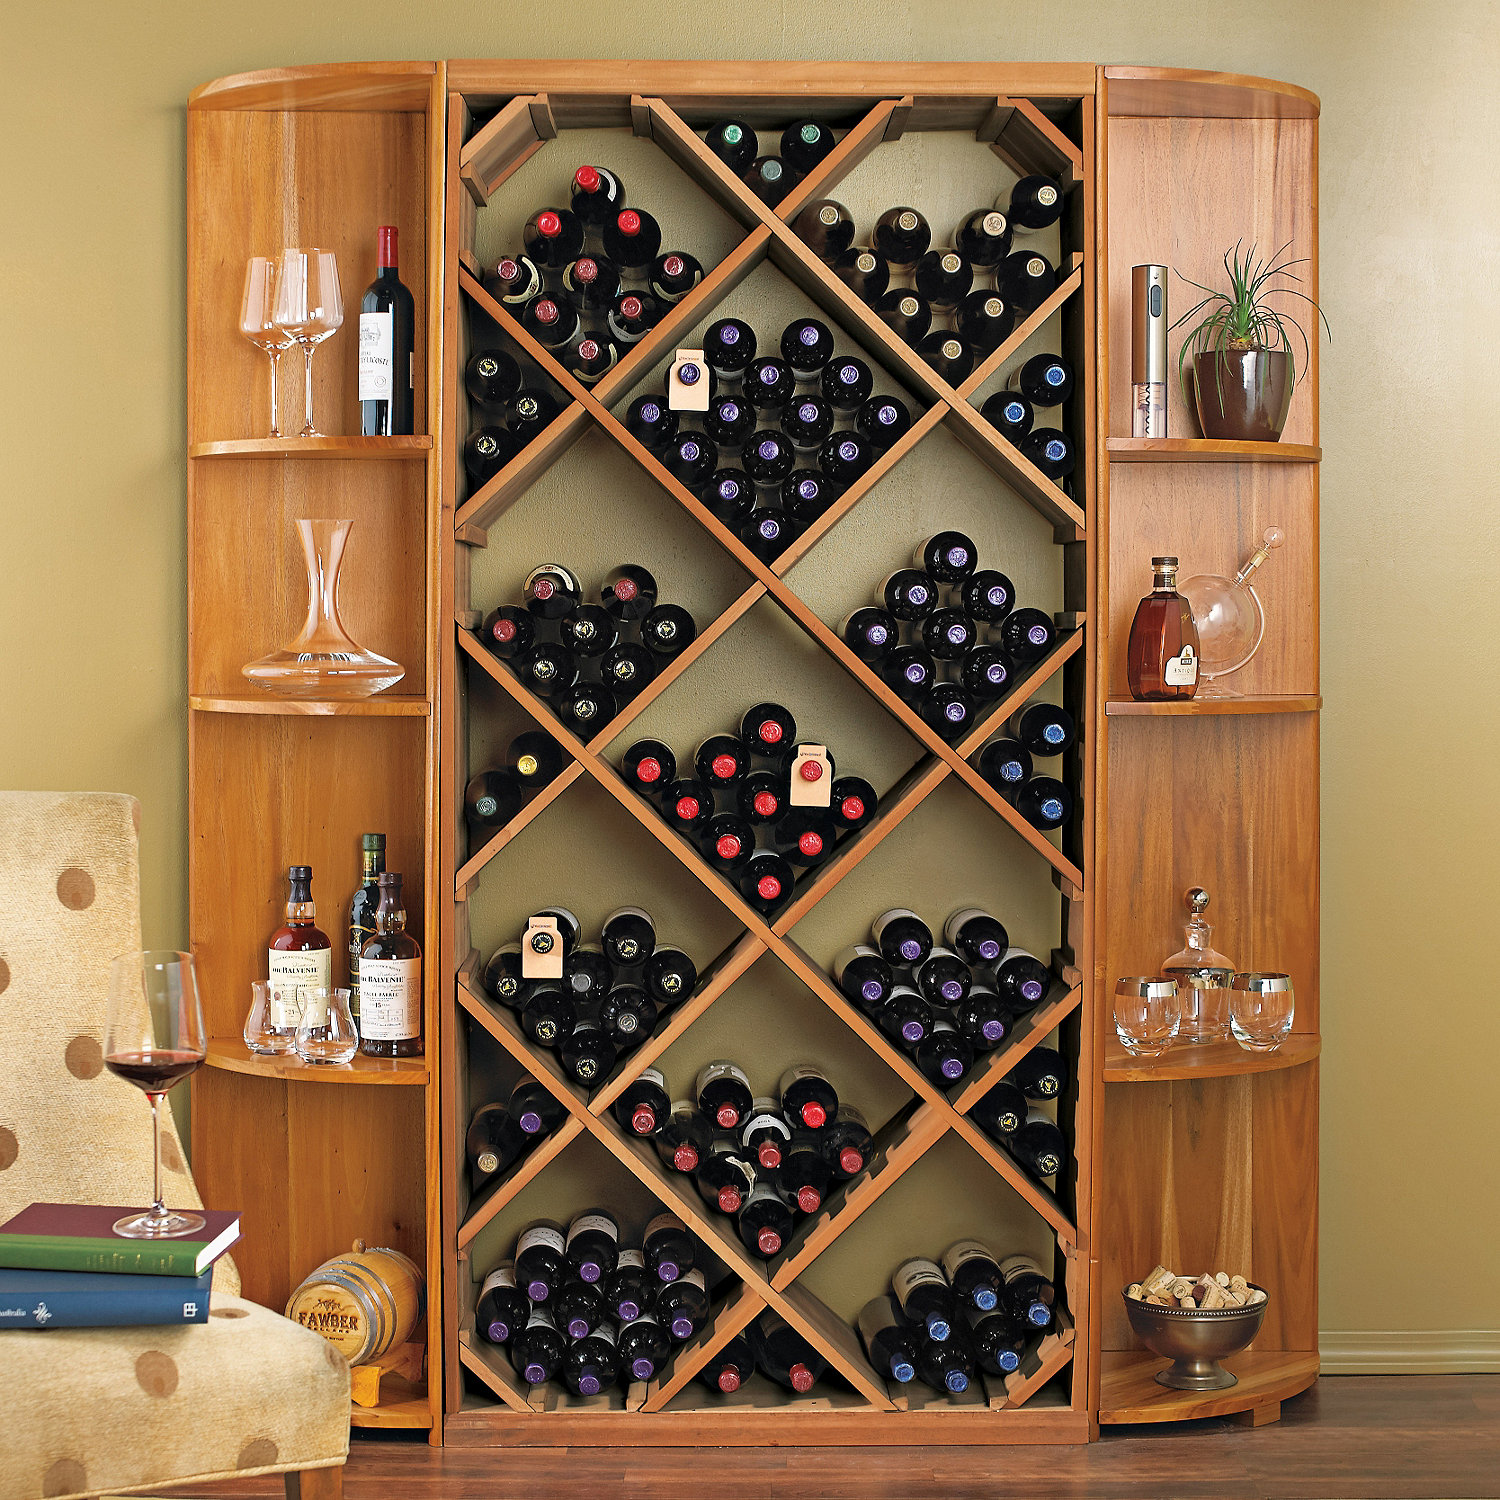 Design Building A Wine Rack nfinity diy diamond bin dual quarter round shelf wine rack set preparing zoom